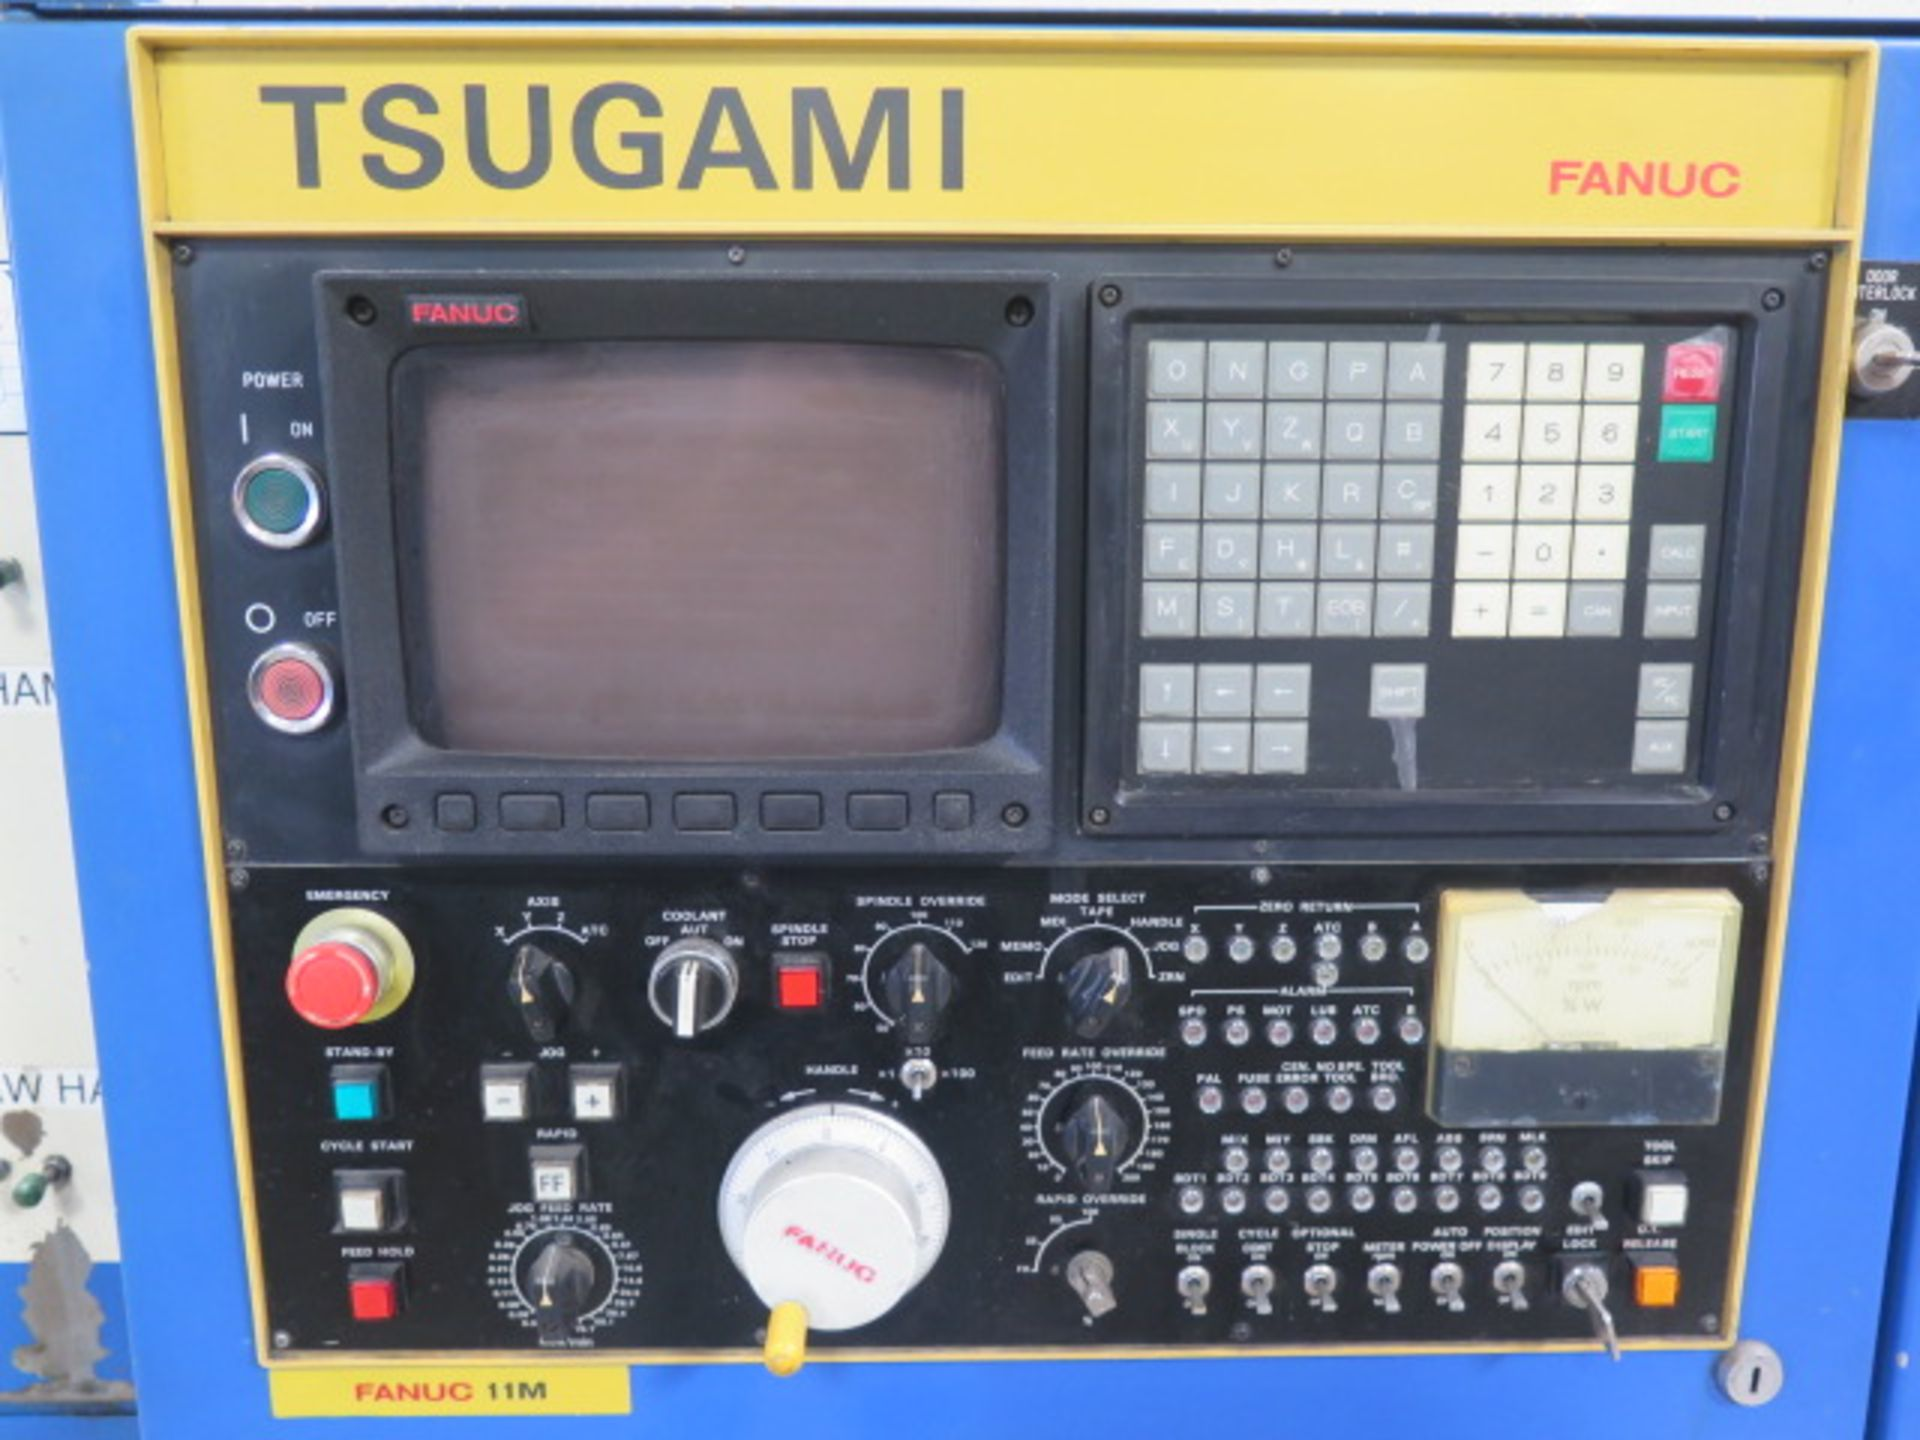 Tsugami MS3.10P Type MA3H 4-Axis 10-Pallet CNC HMC (HAS X-AXIS PROBLEM), SOLD AS IS - Image 5 of 20